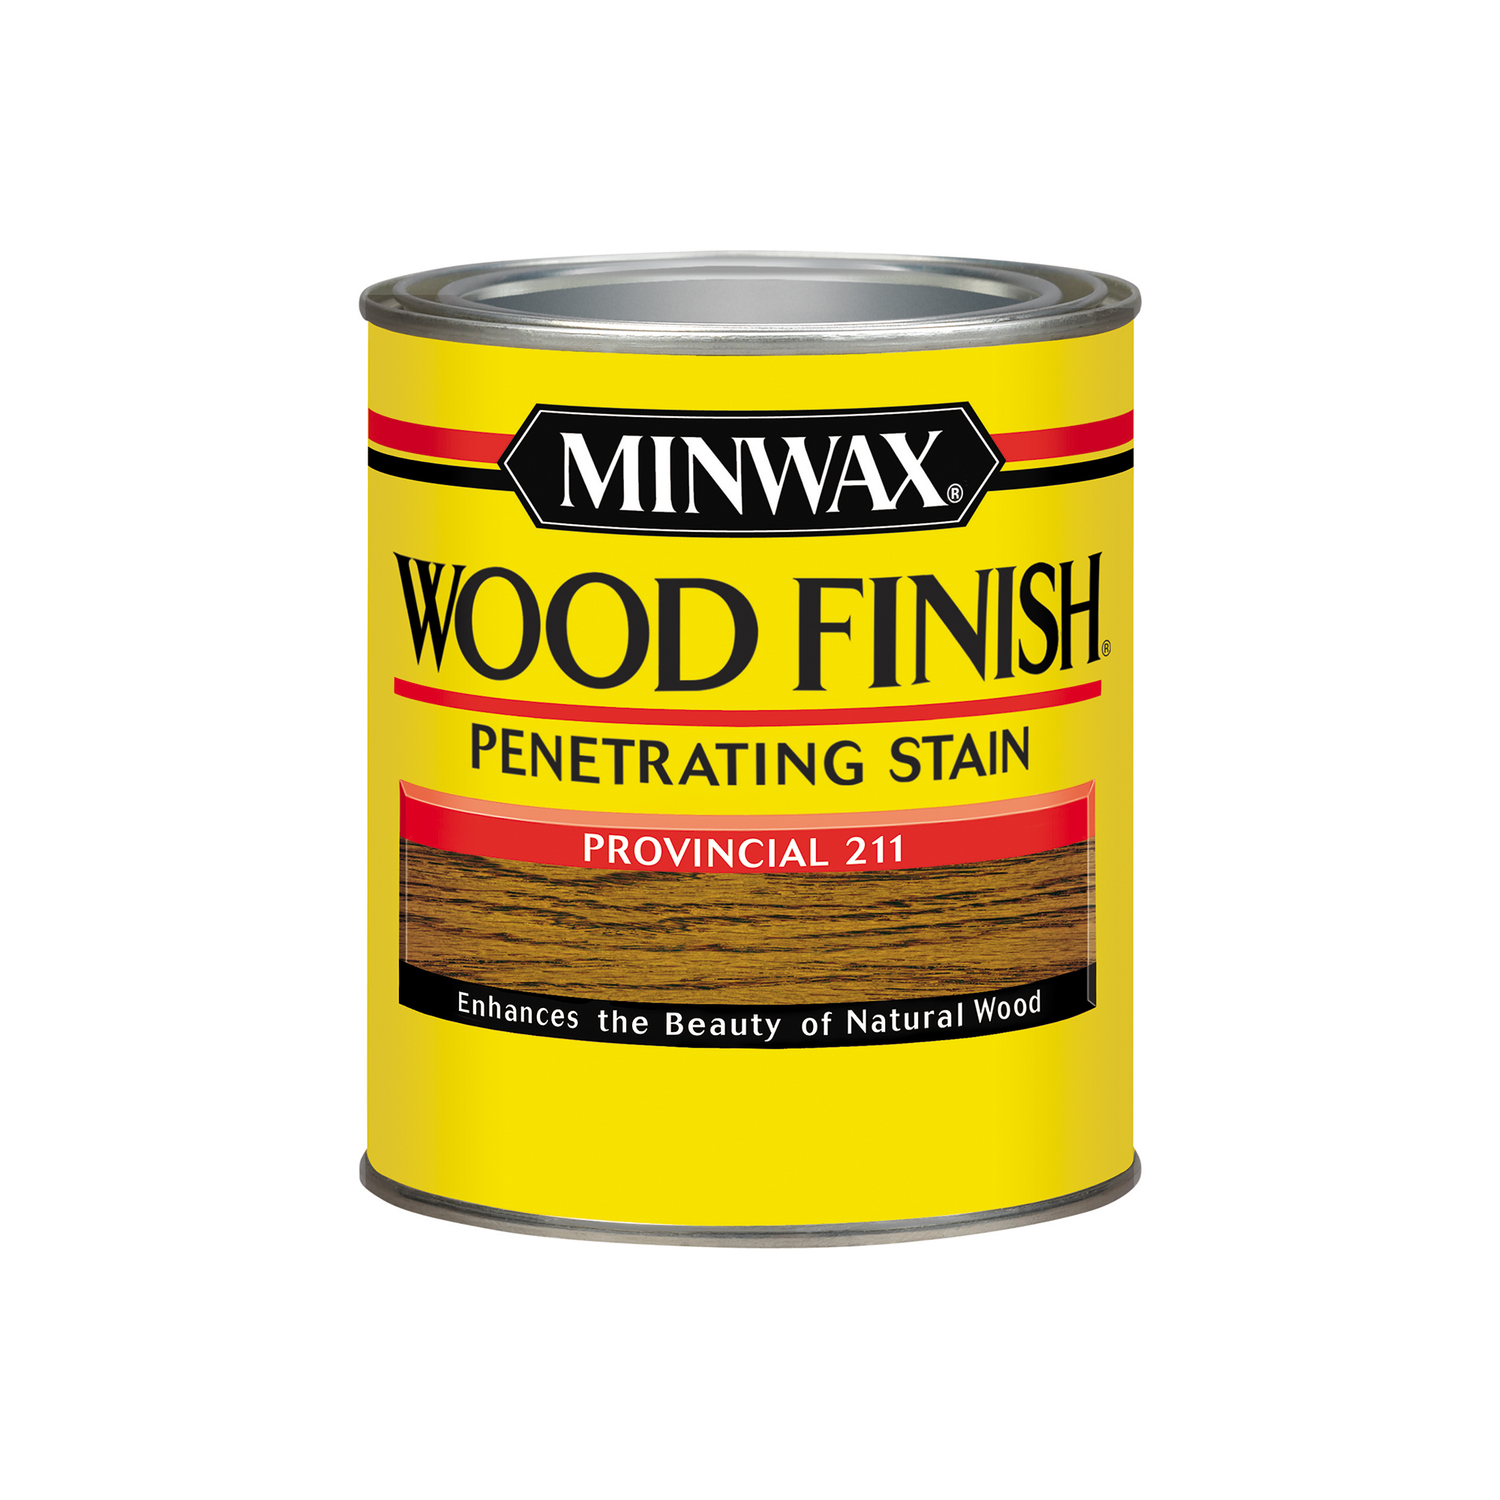 Minwax  Wood Finish  Semi-Transparent  Provincial  Oil-Based  Oil  Wood Stain  1 qt.